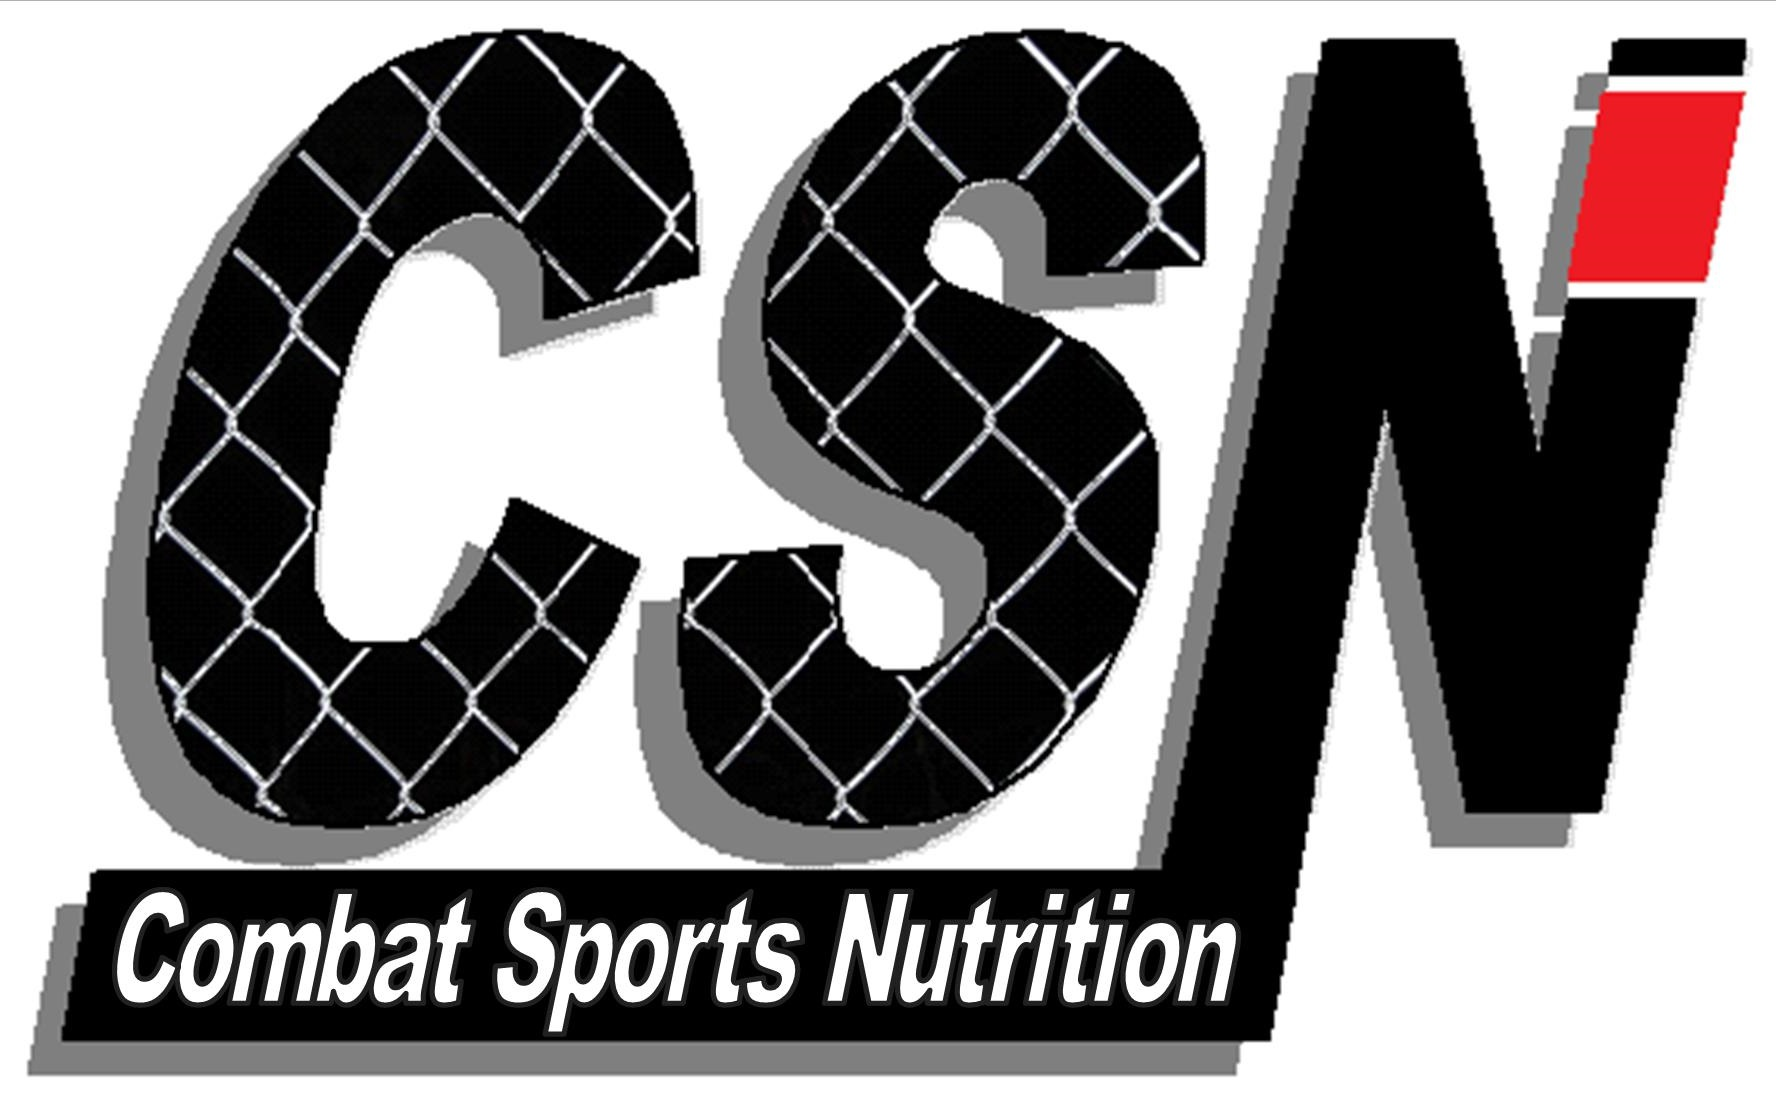 S4P Special Episode #4 with Dr Reid Reale, Making weight in Combat Sports